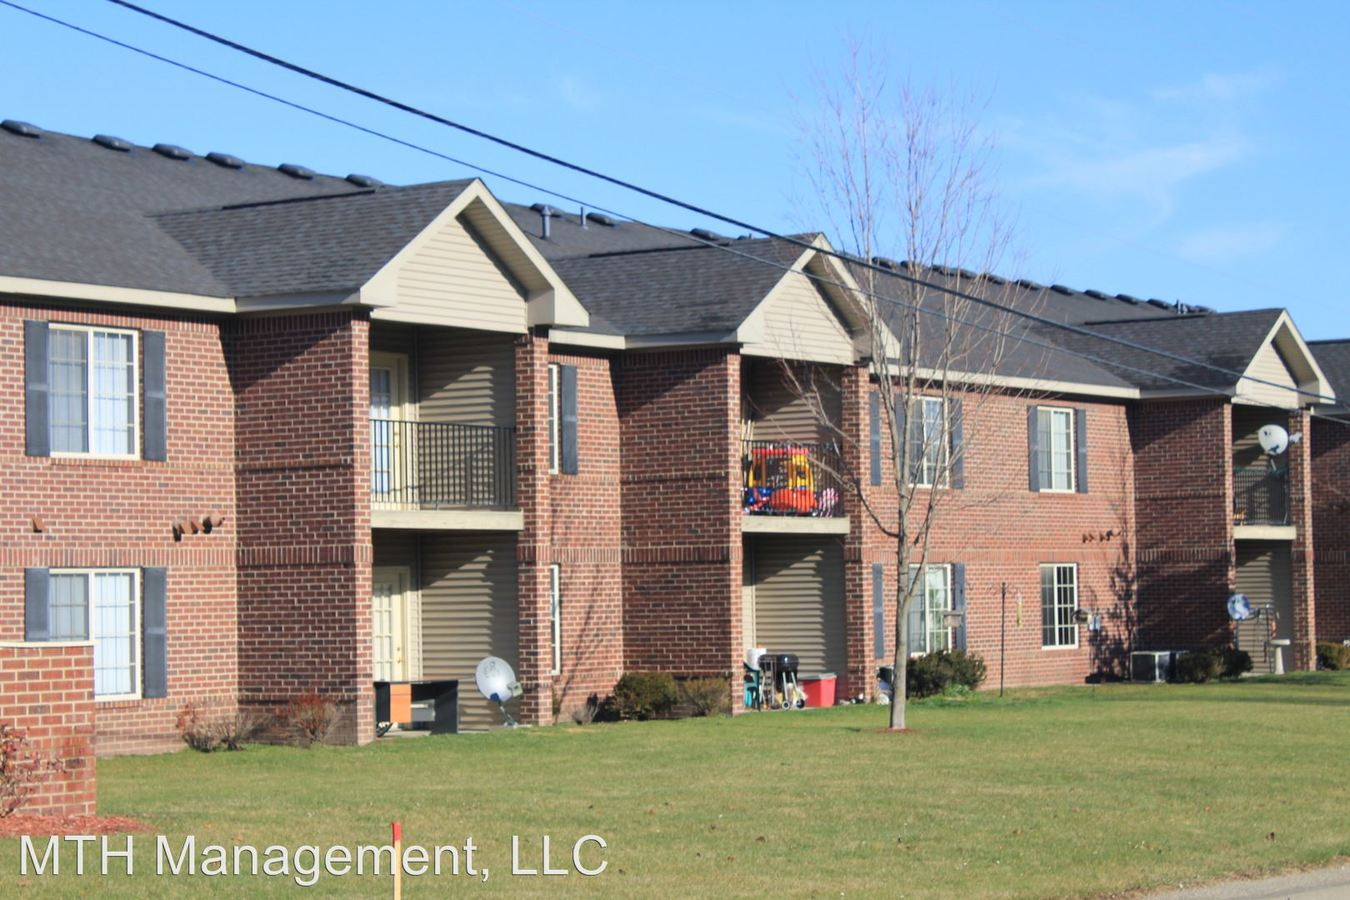 3 Bedrooms 2 Bathrooms Apartment for rent at 129 Belleview Dr in Ionia, MI